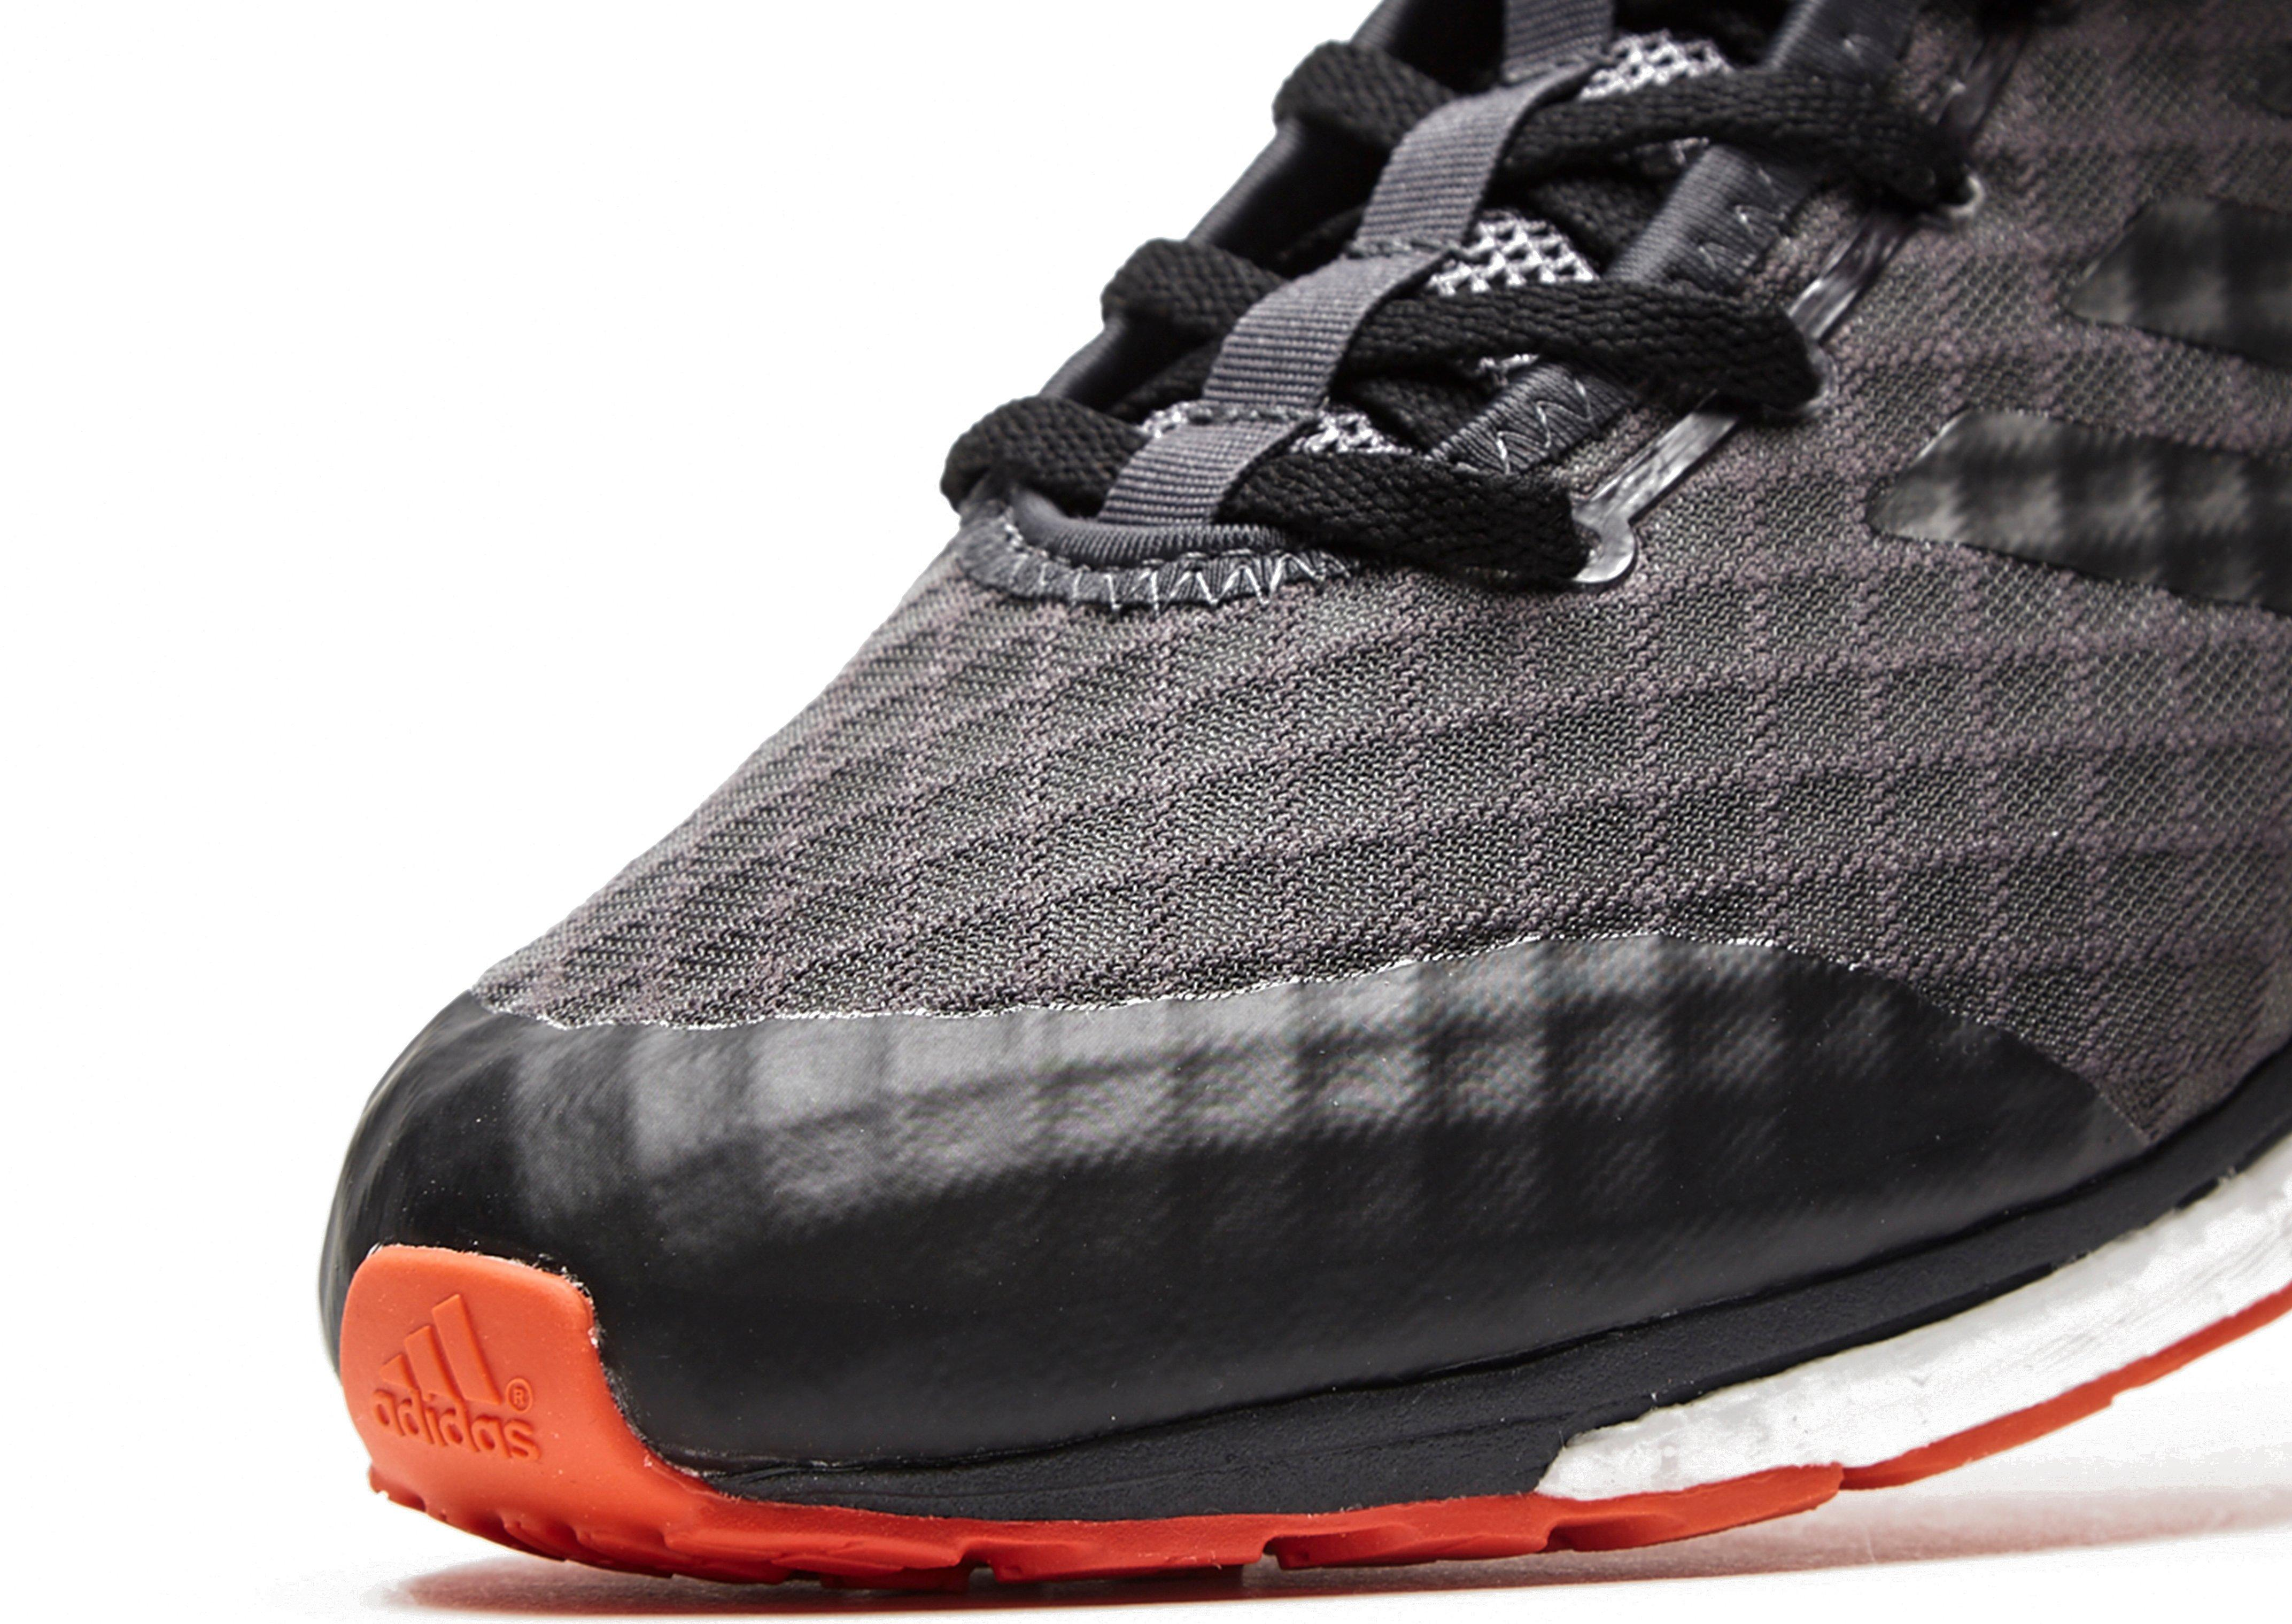 Details about adidas Speedex 16.1 Boost Boxing Shoes Black